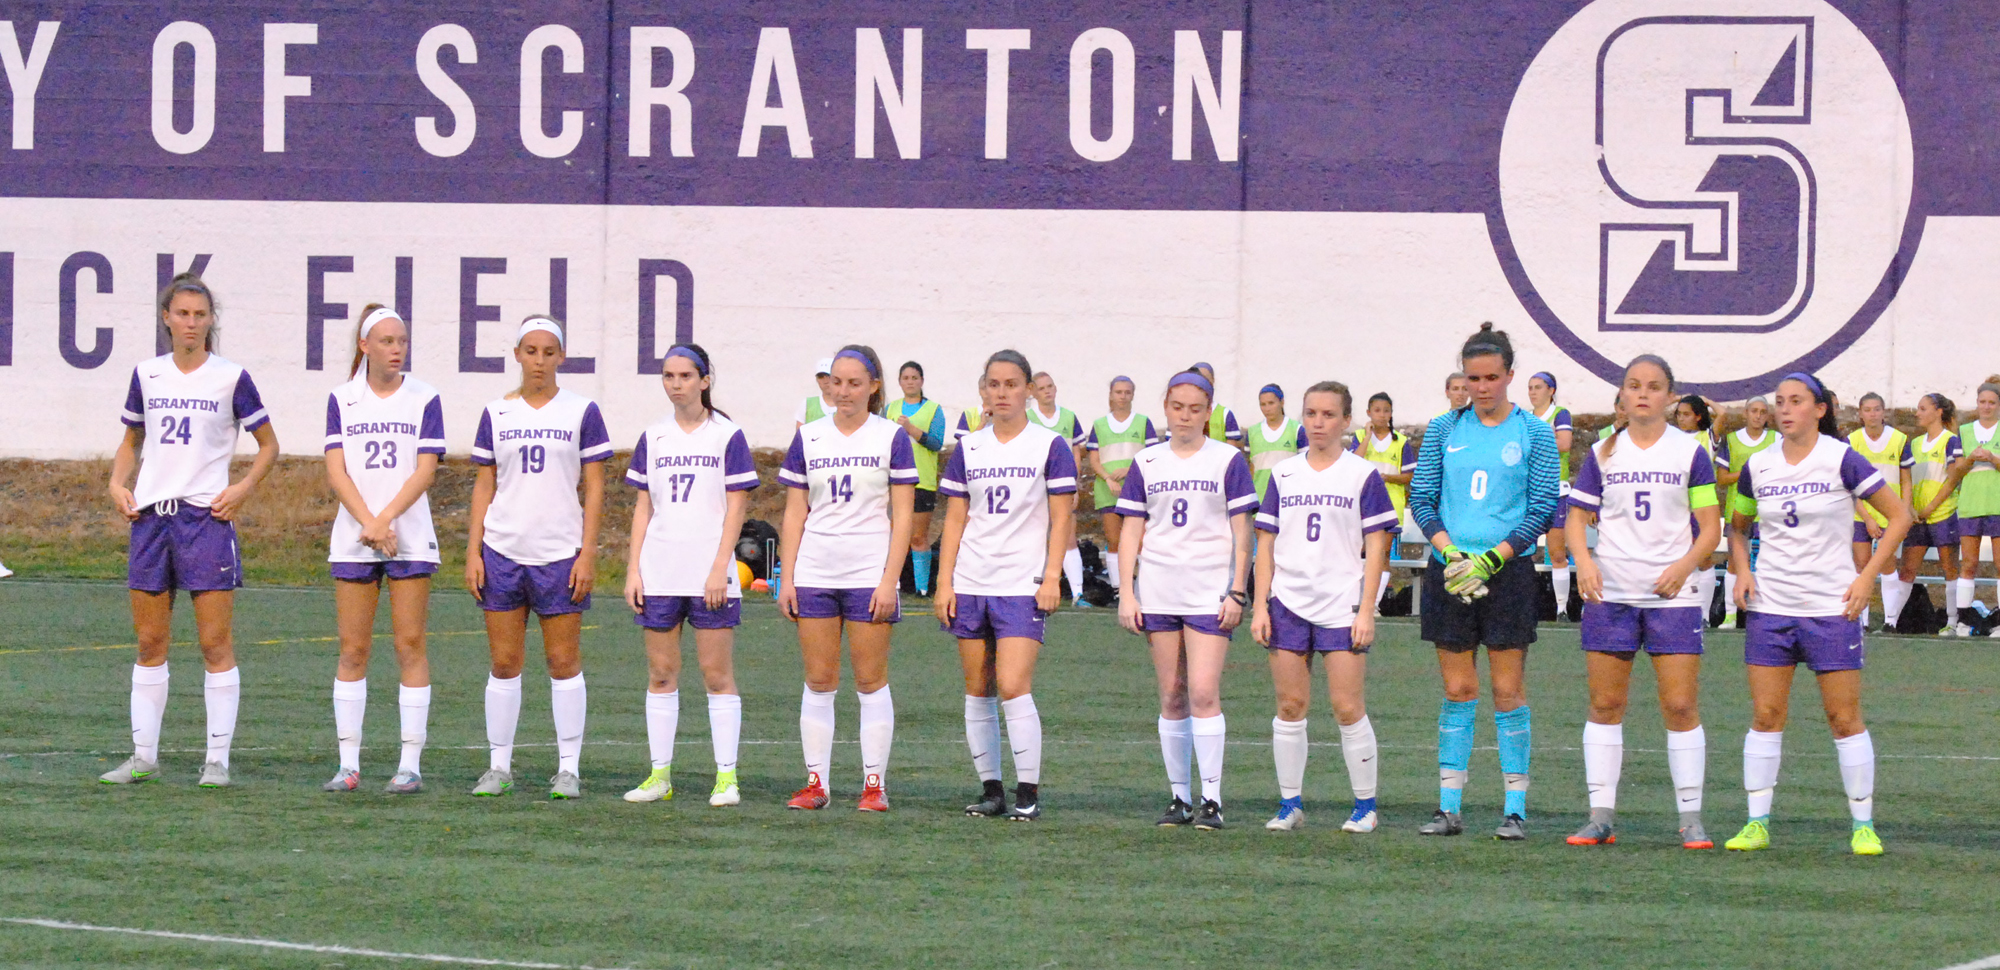 Women's Soccer Remains Sixth In Latest Regional Rankings